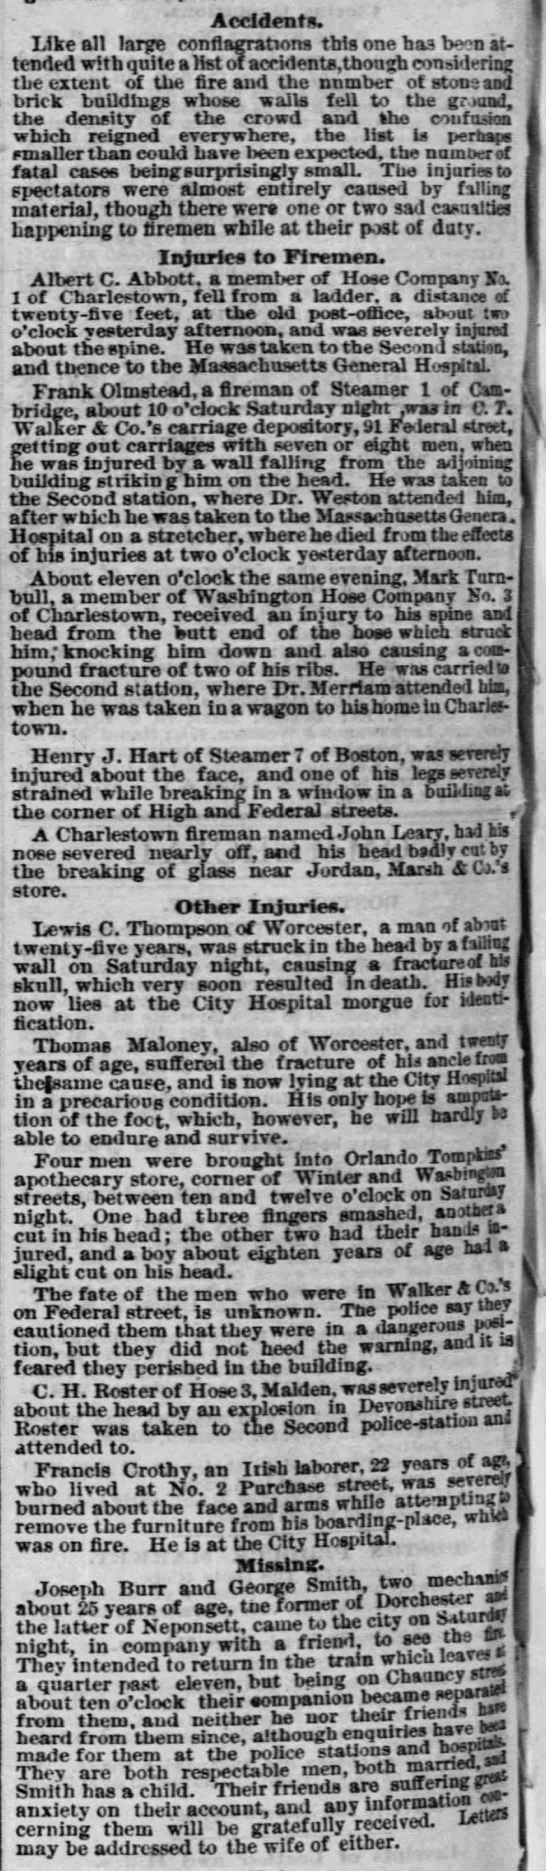 Injuries and deaths due to the Great Boston Fire -